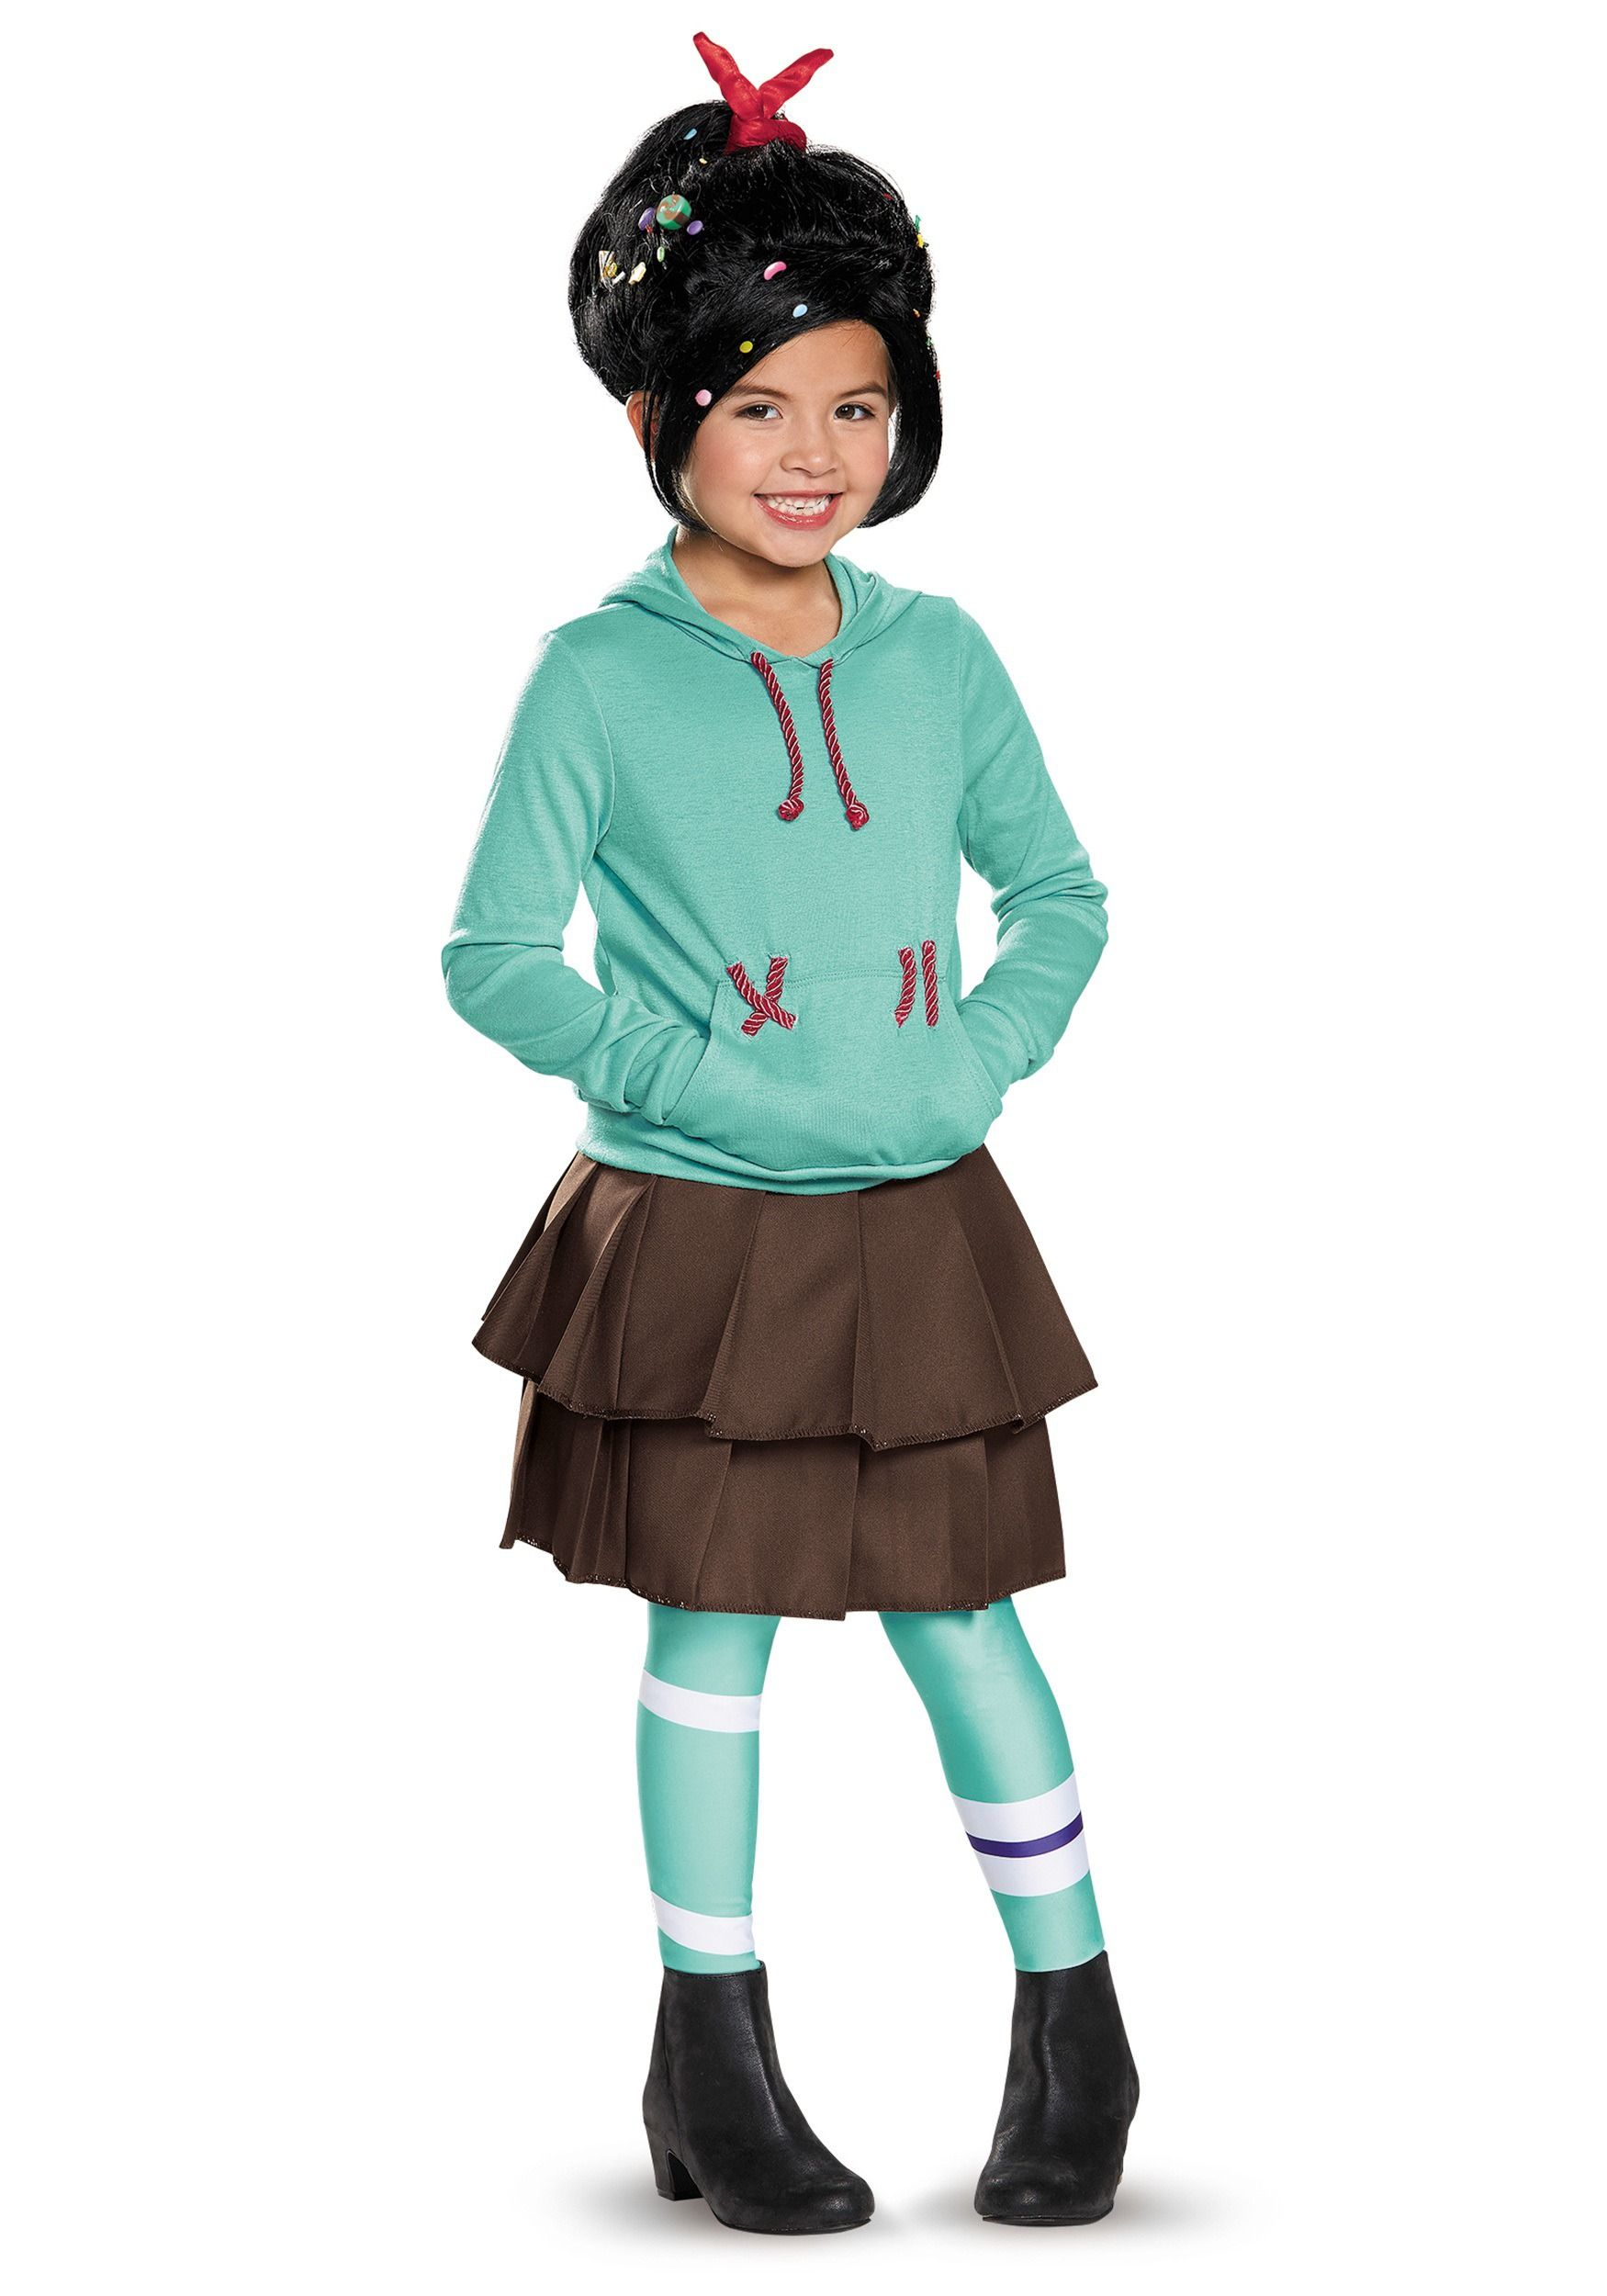 Child Deluxe Vanellope Von Schweetz Costume | Costumes, Toddler ...